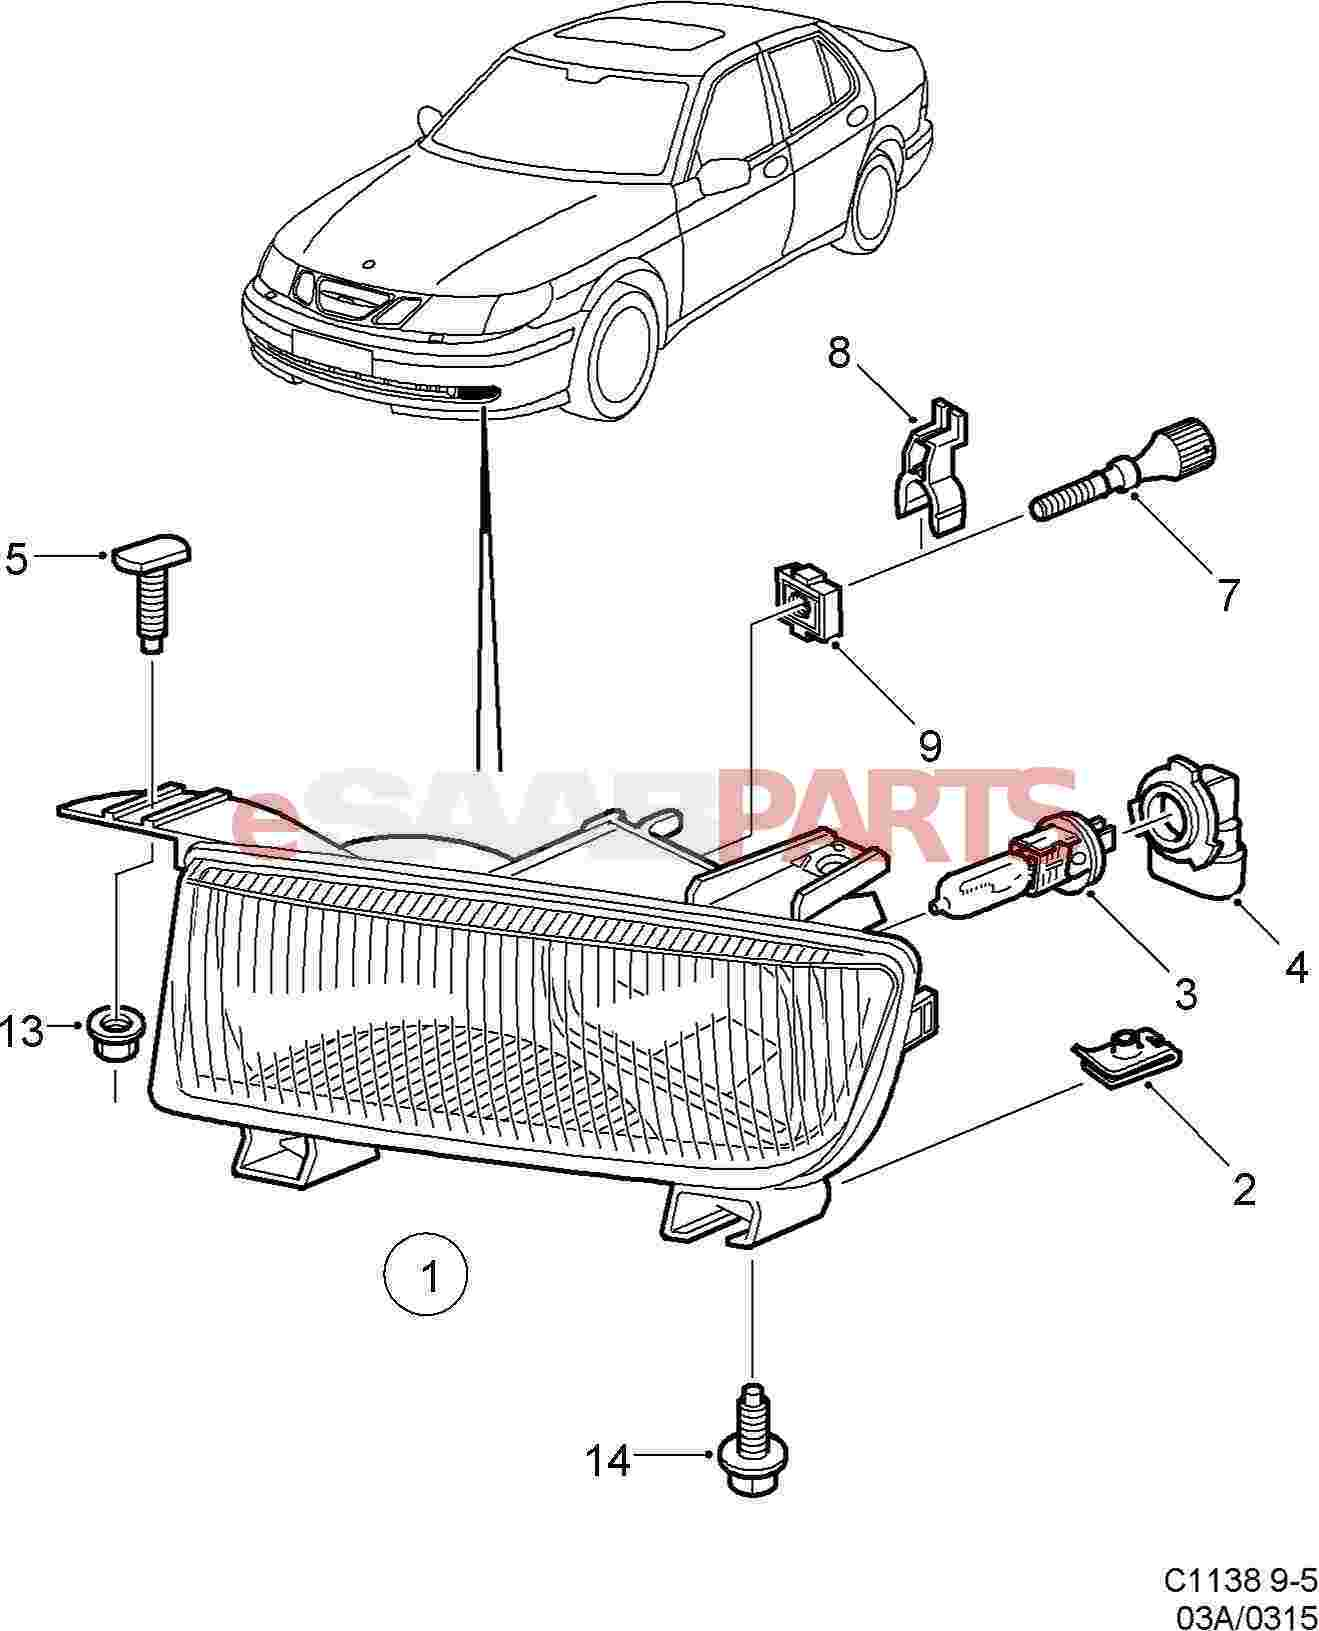 Saab 900 Convertible Wiring Diagram